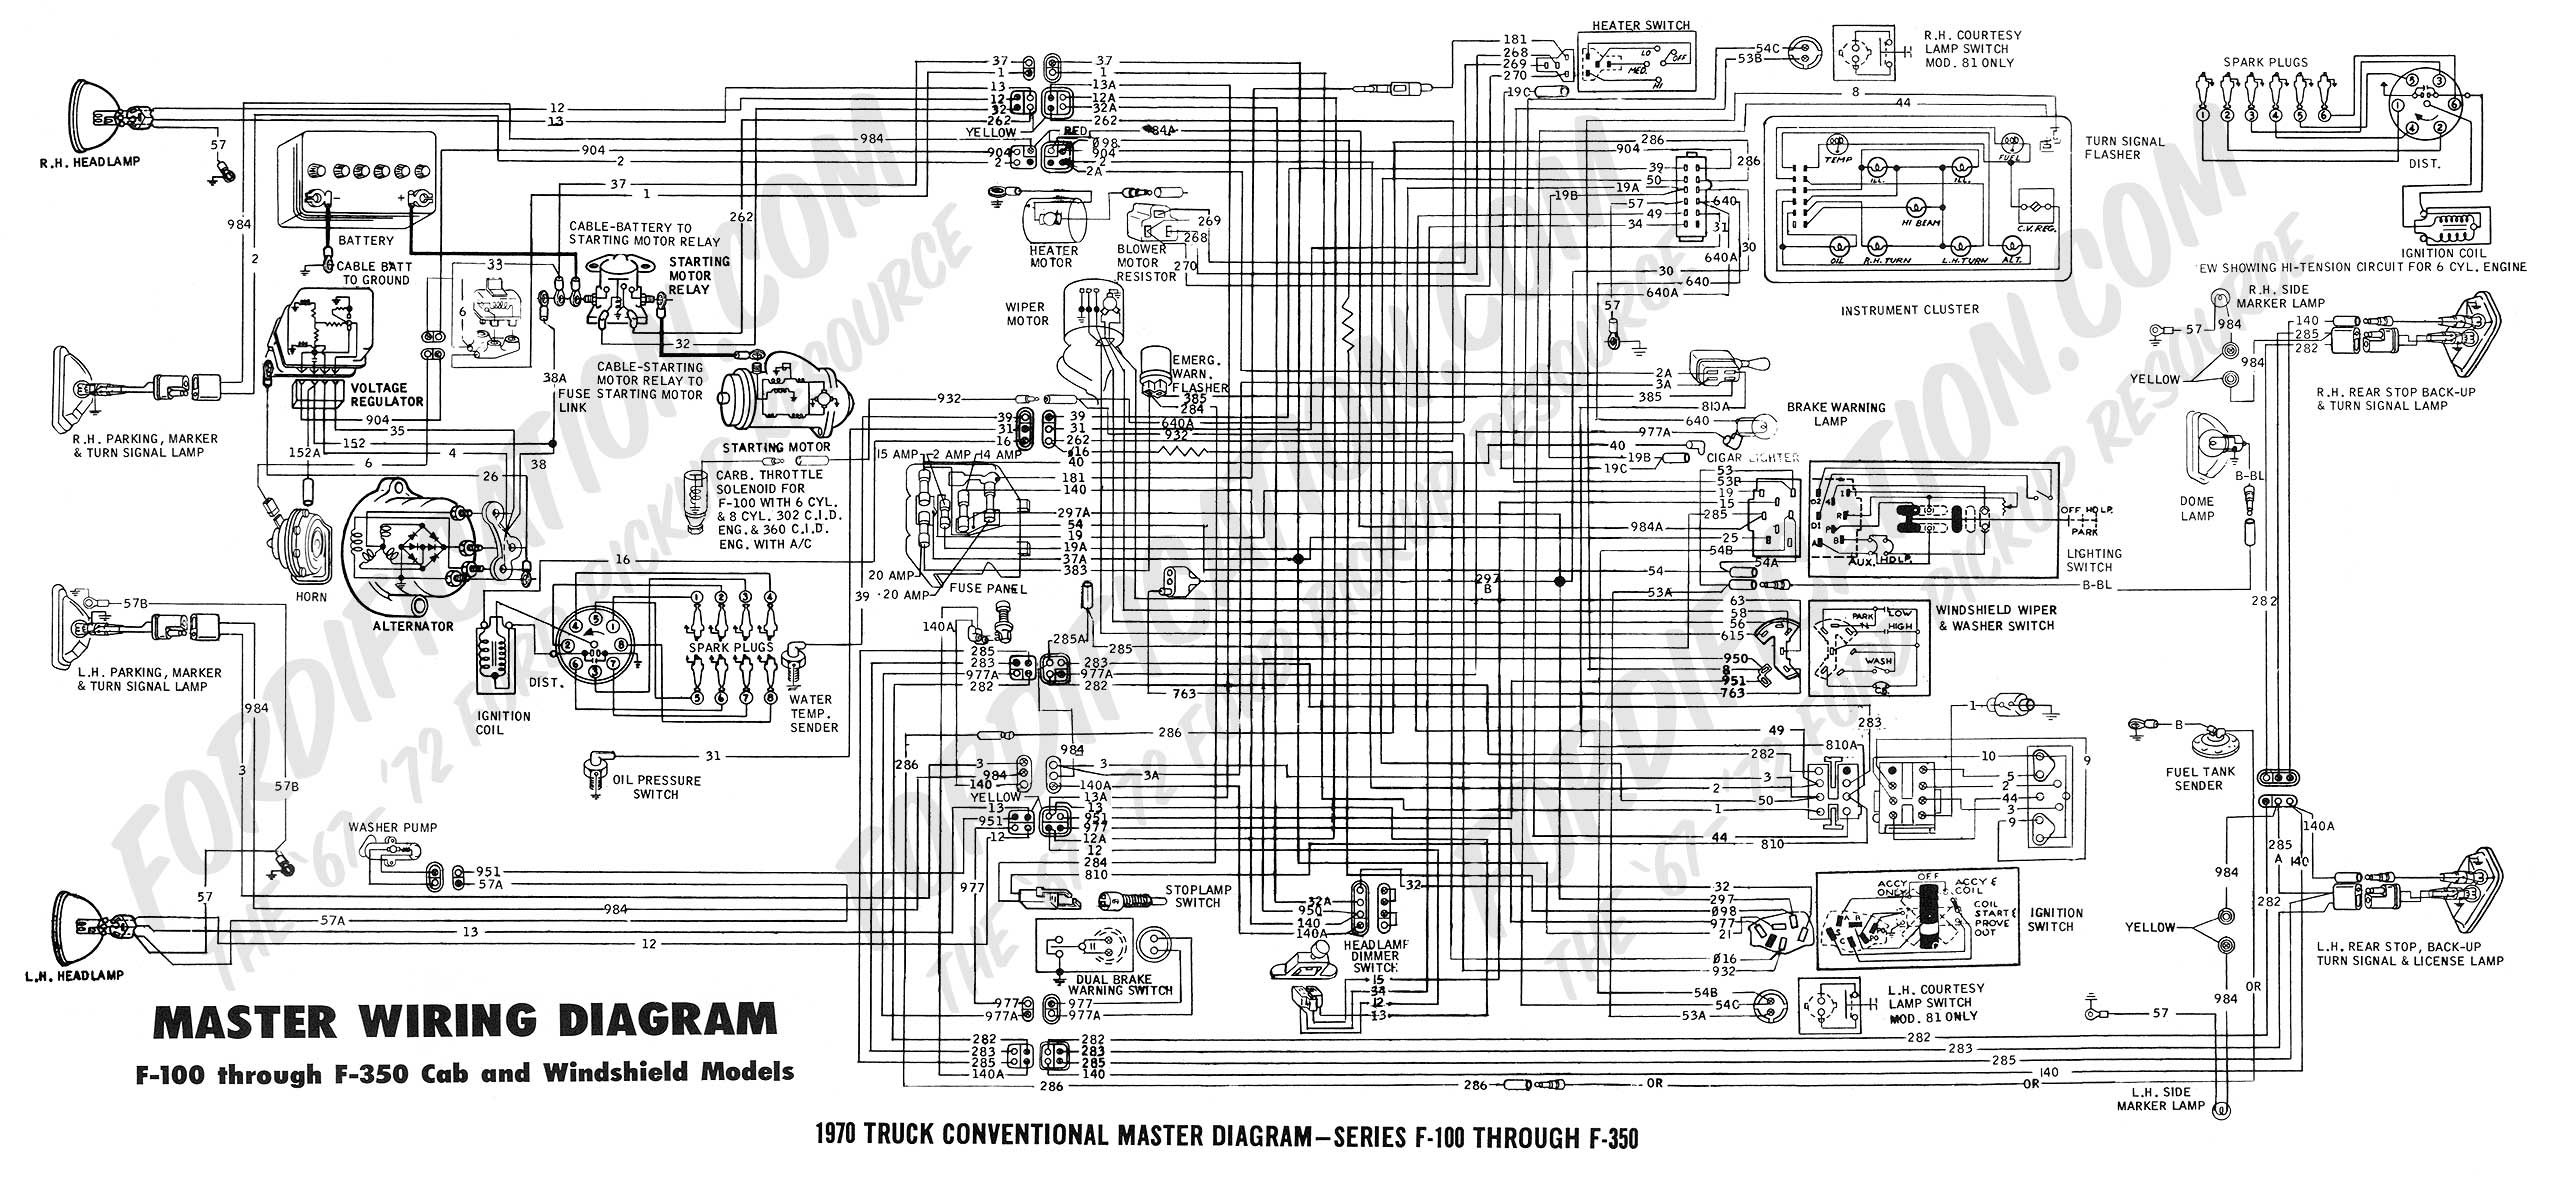 1975 ford maverick wiring wiring diagram 1975 Buick Skyhawk Wiring Diagram